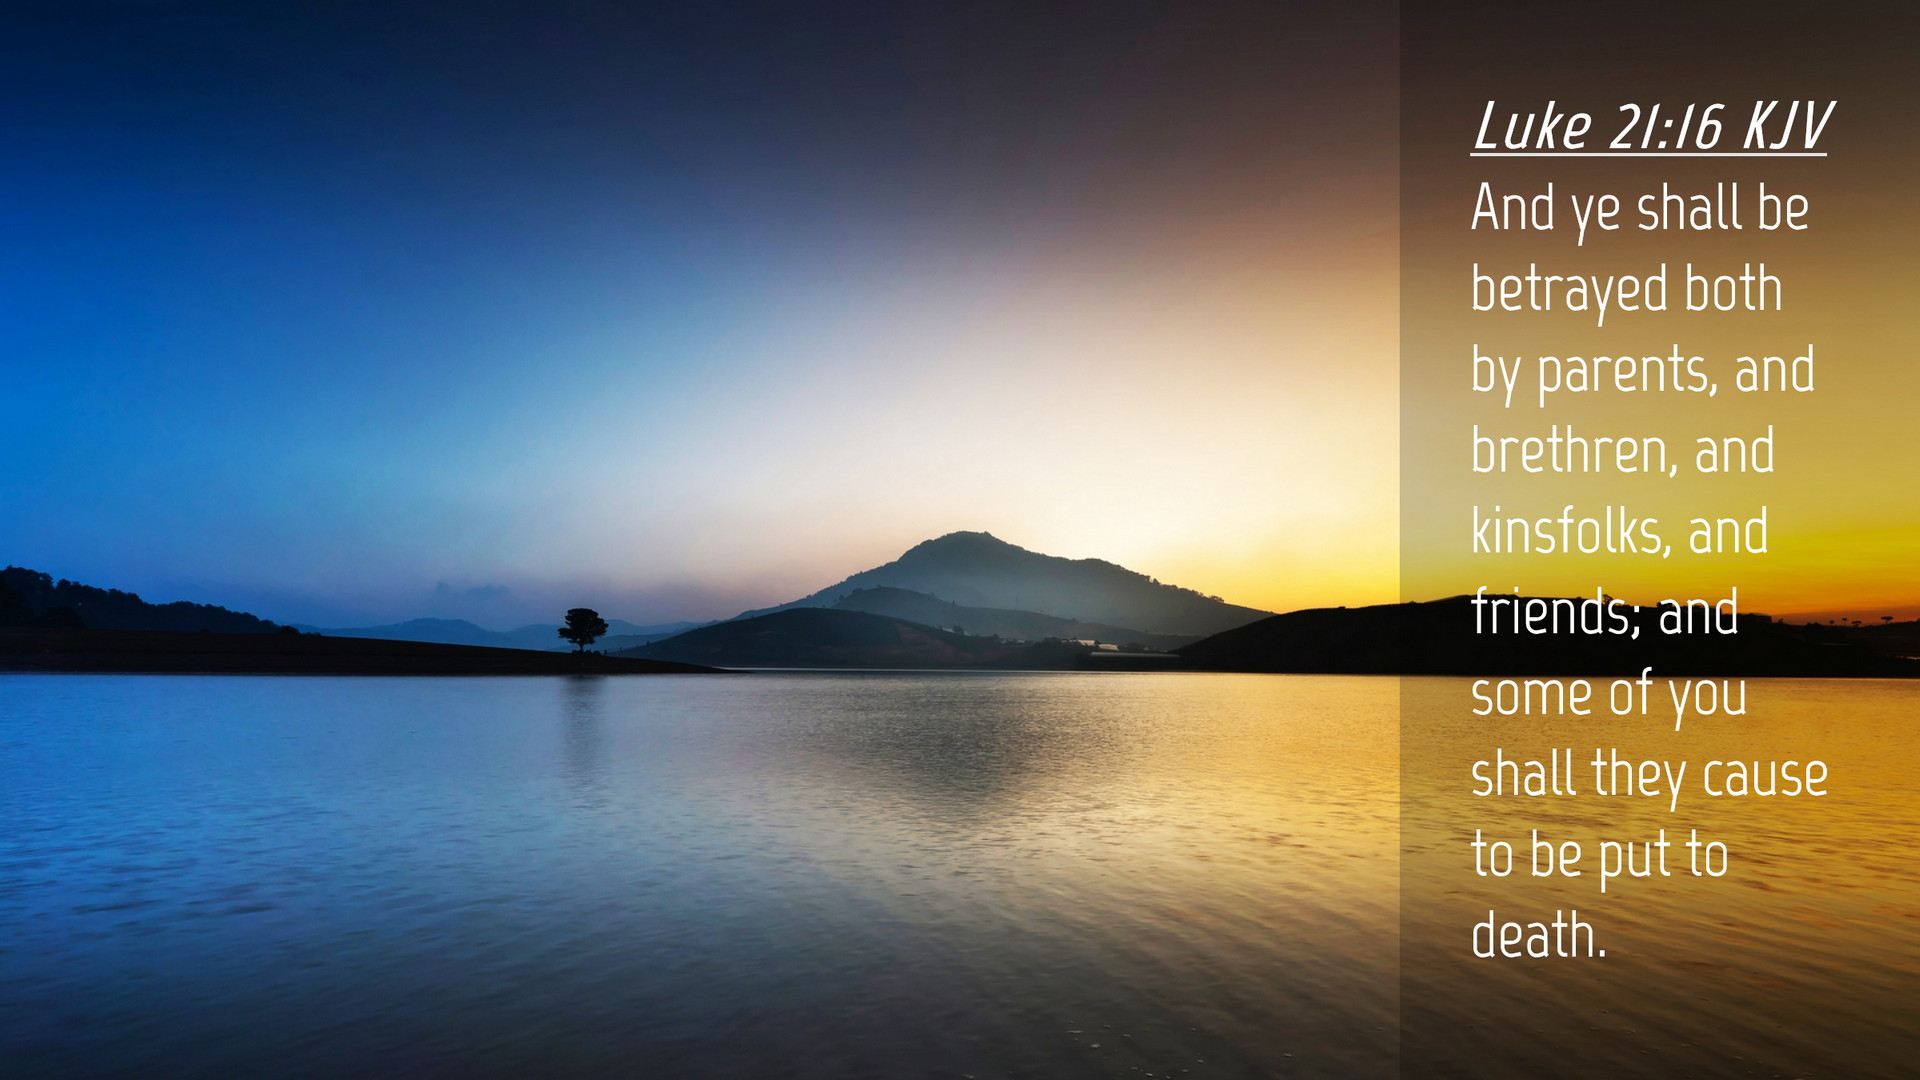 Luke 21:16 KJV Desktop Wallpaper - And ye shall be betrayed both by  parents, and